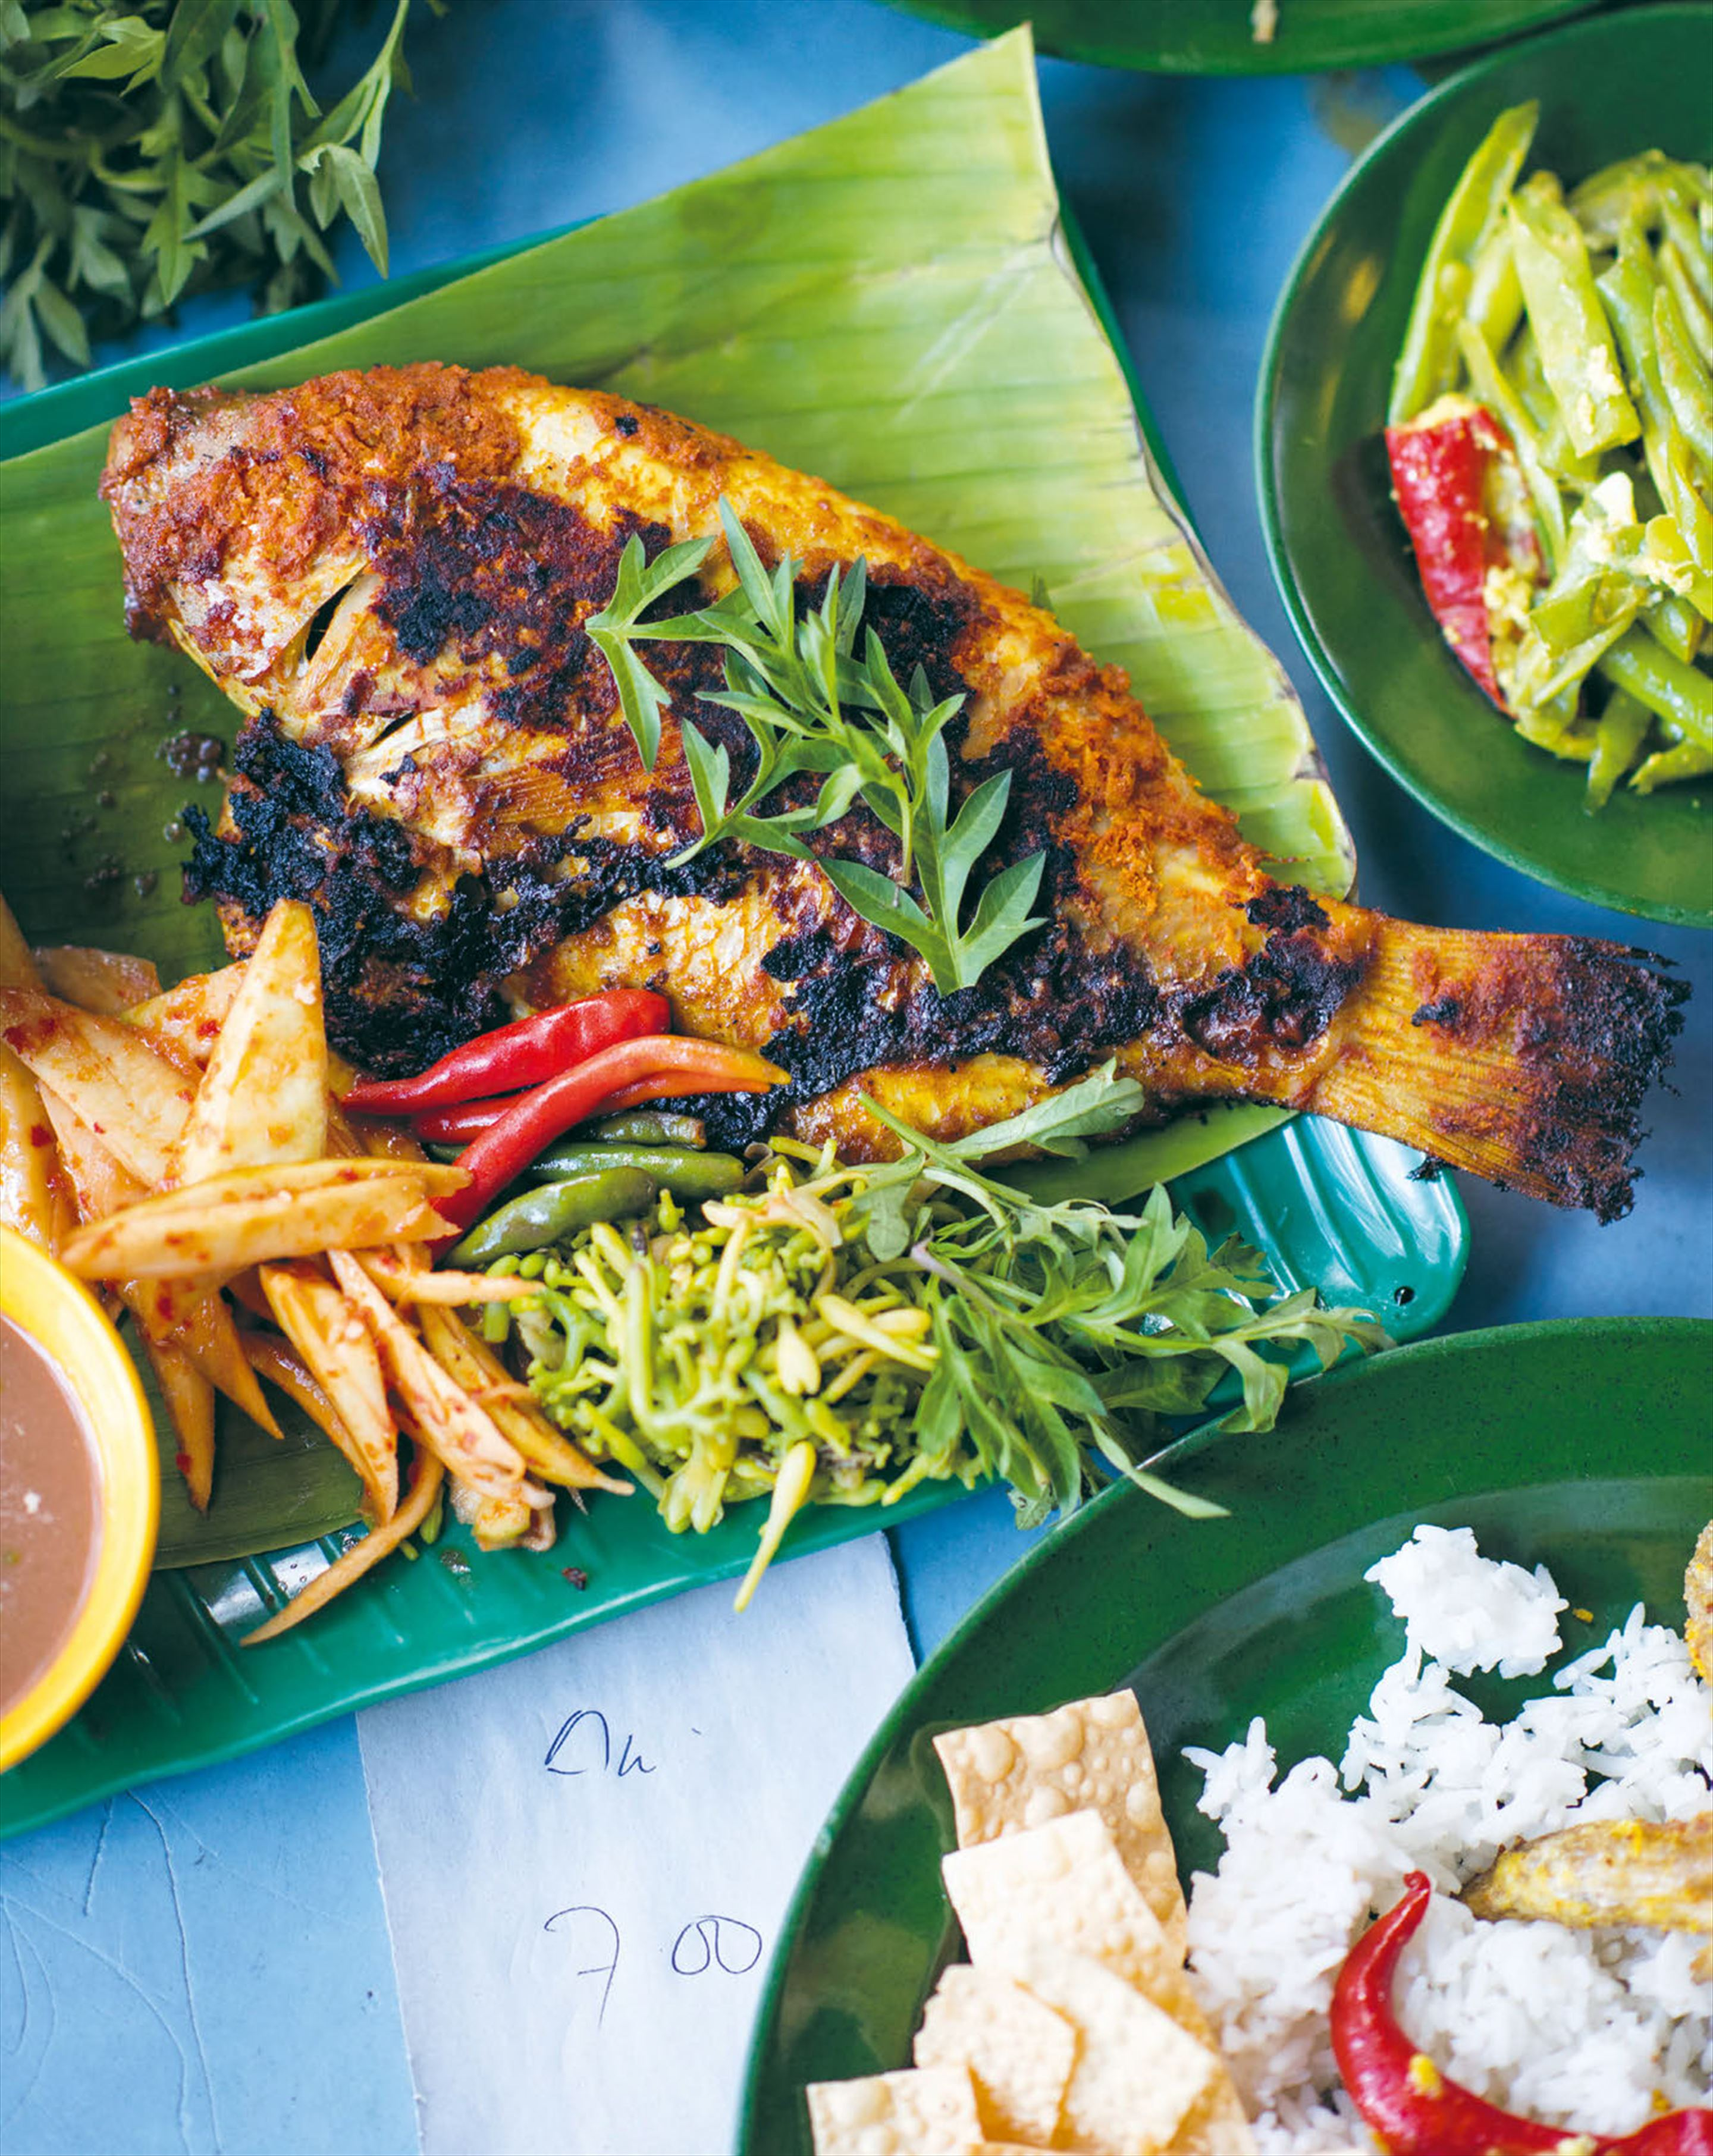 Grilled fish & herbs wrapped in banana leaf